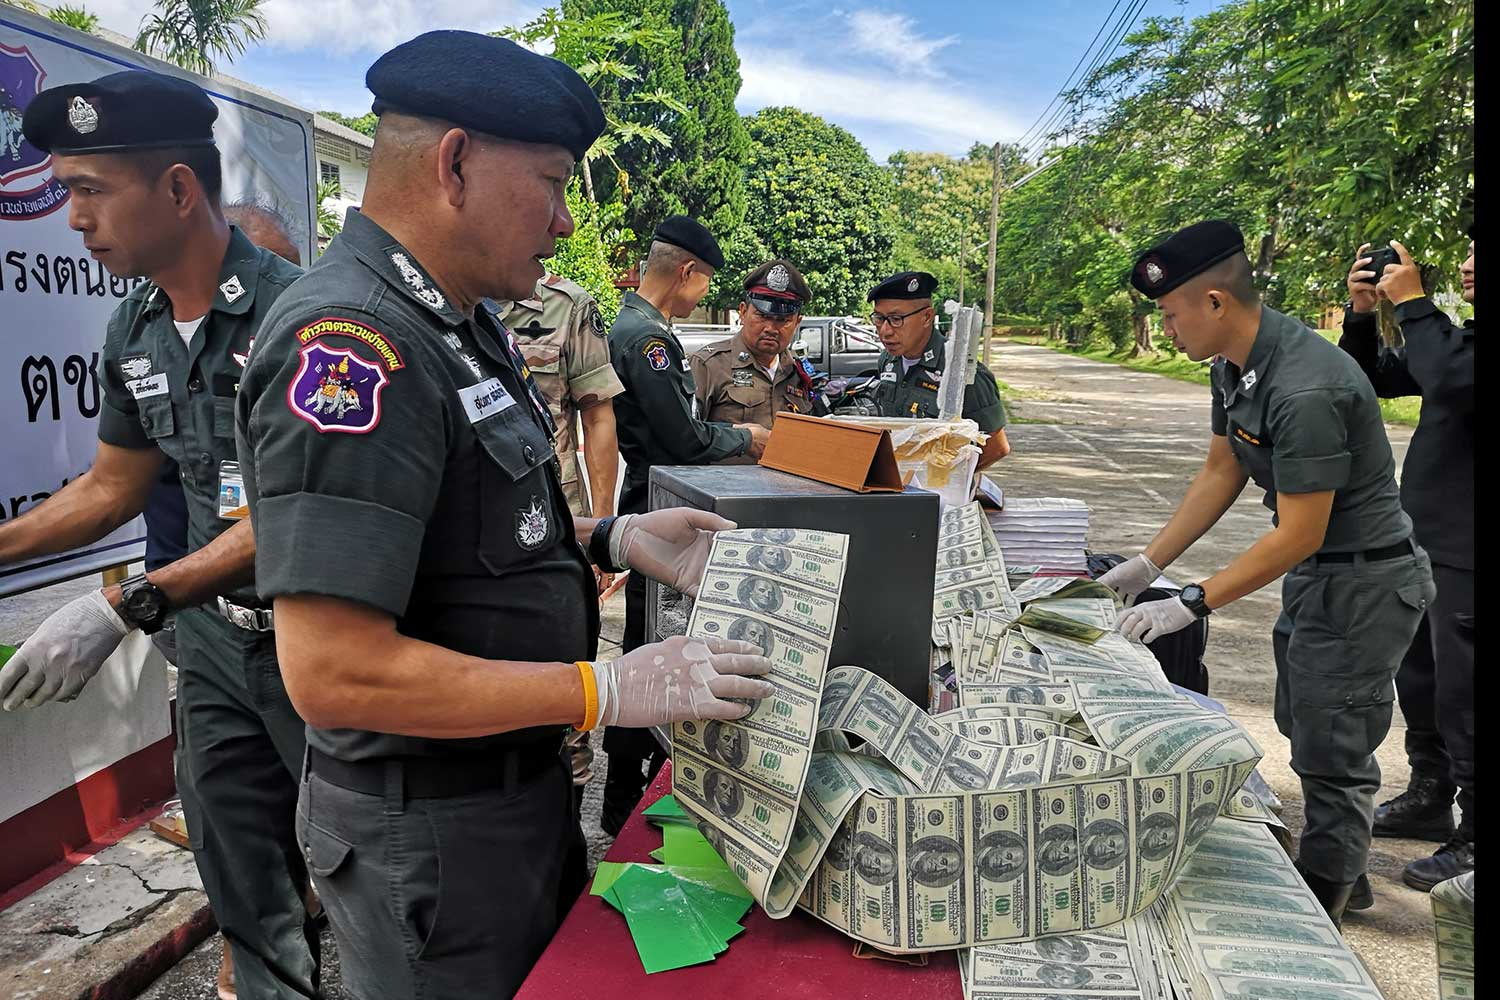 Counterfeit US$100 banknotes are seized at a house in Muang district, Chiang Rai,  and the 54-year-old house owner arrested, by border patrol police on Sept 5. (Photo taken from the 32nd Border Patrol Police Division Facebook page)